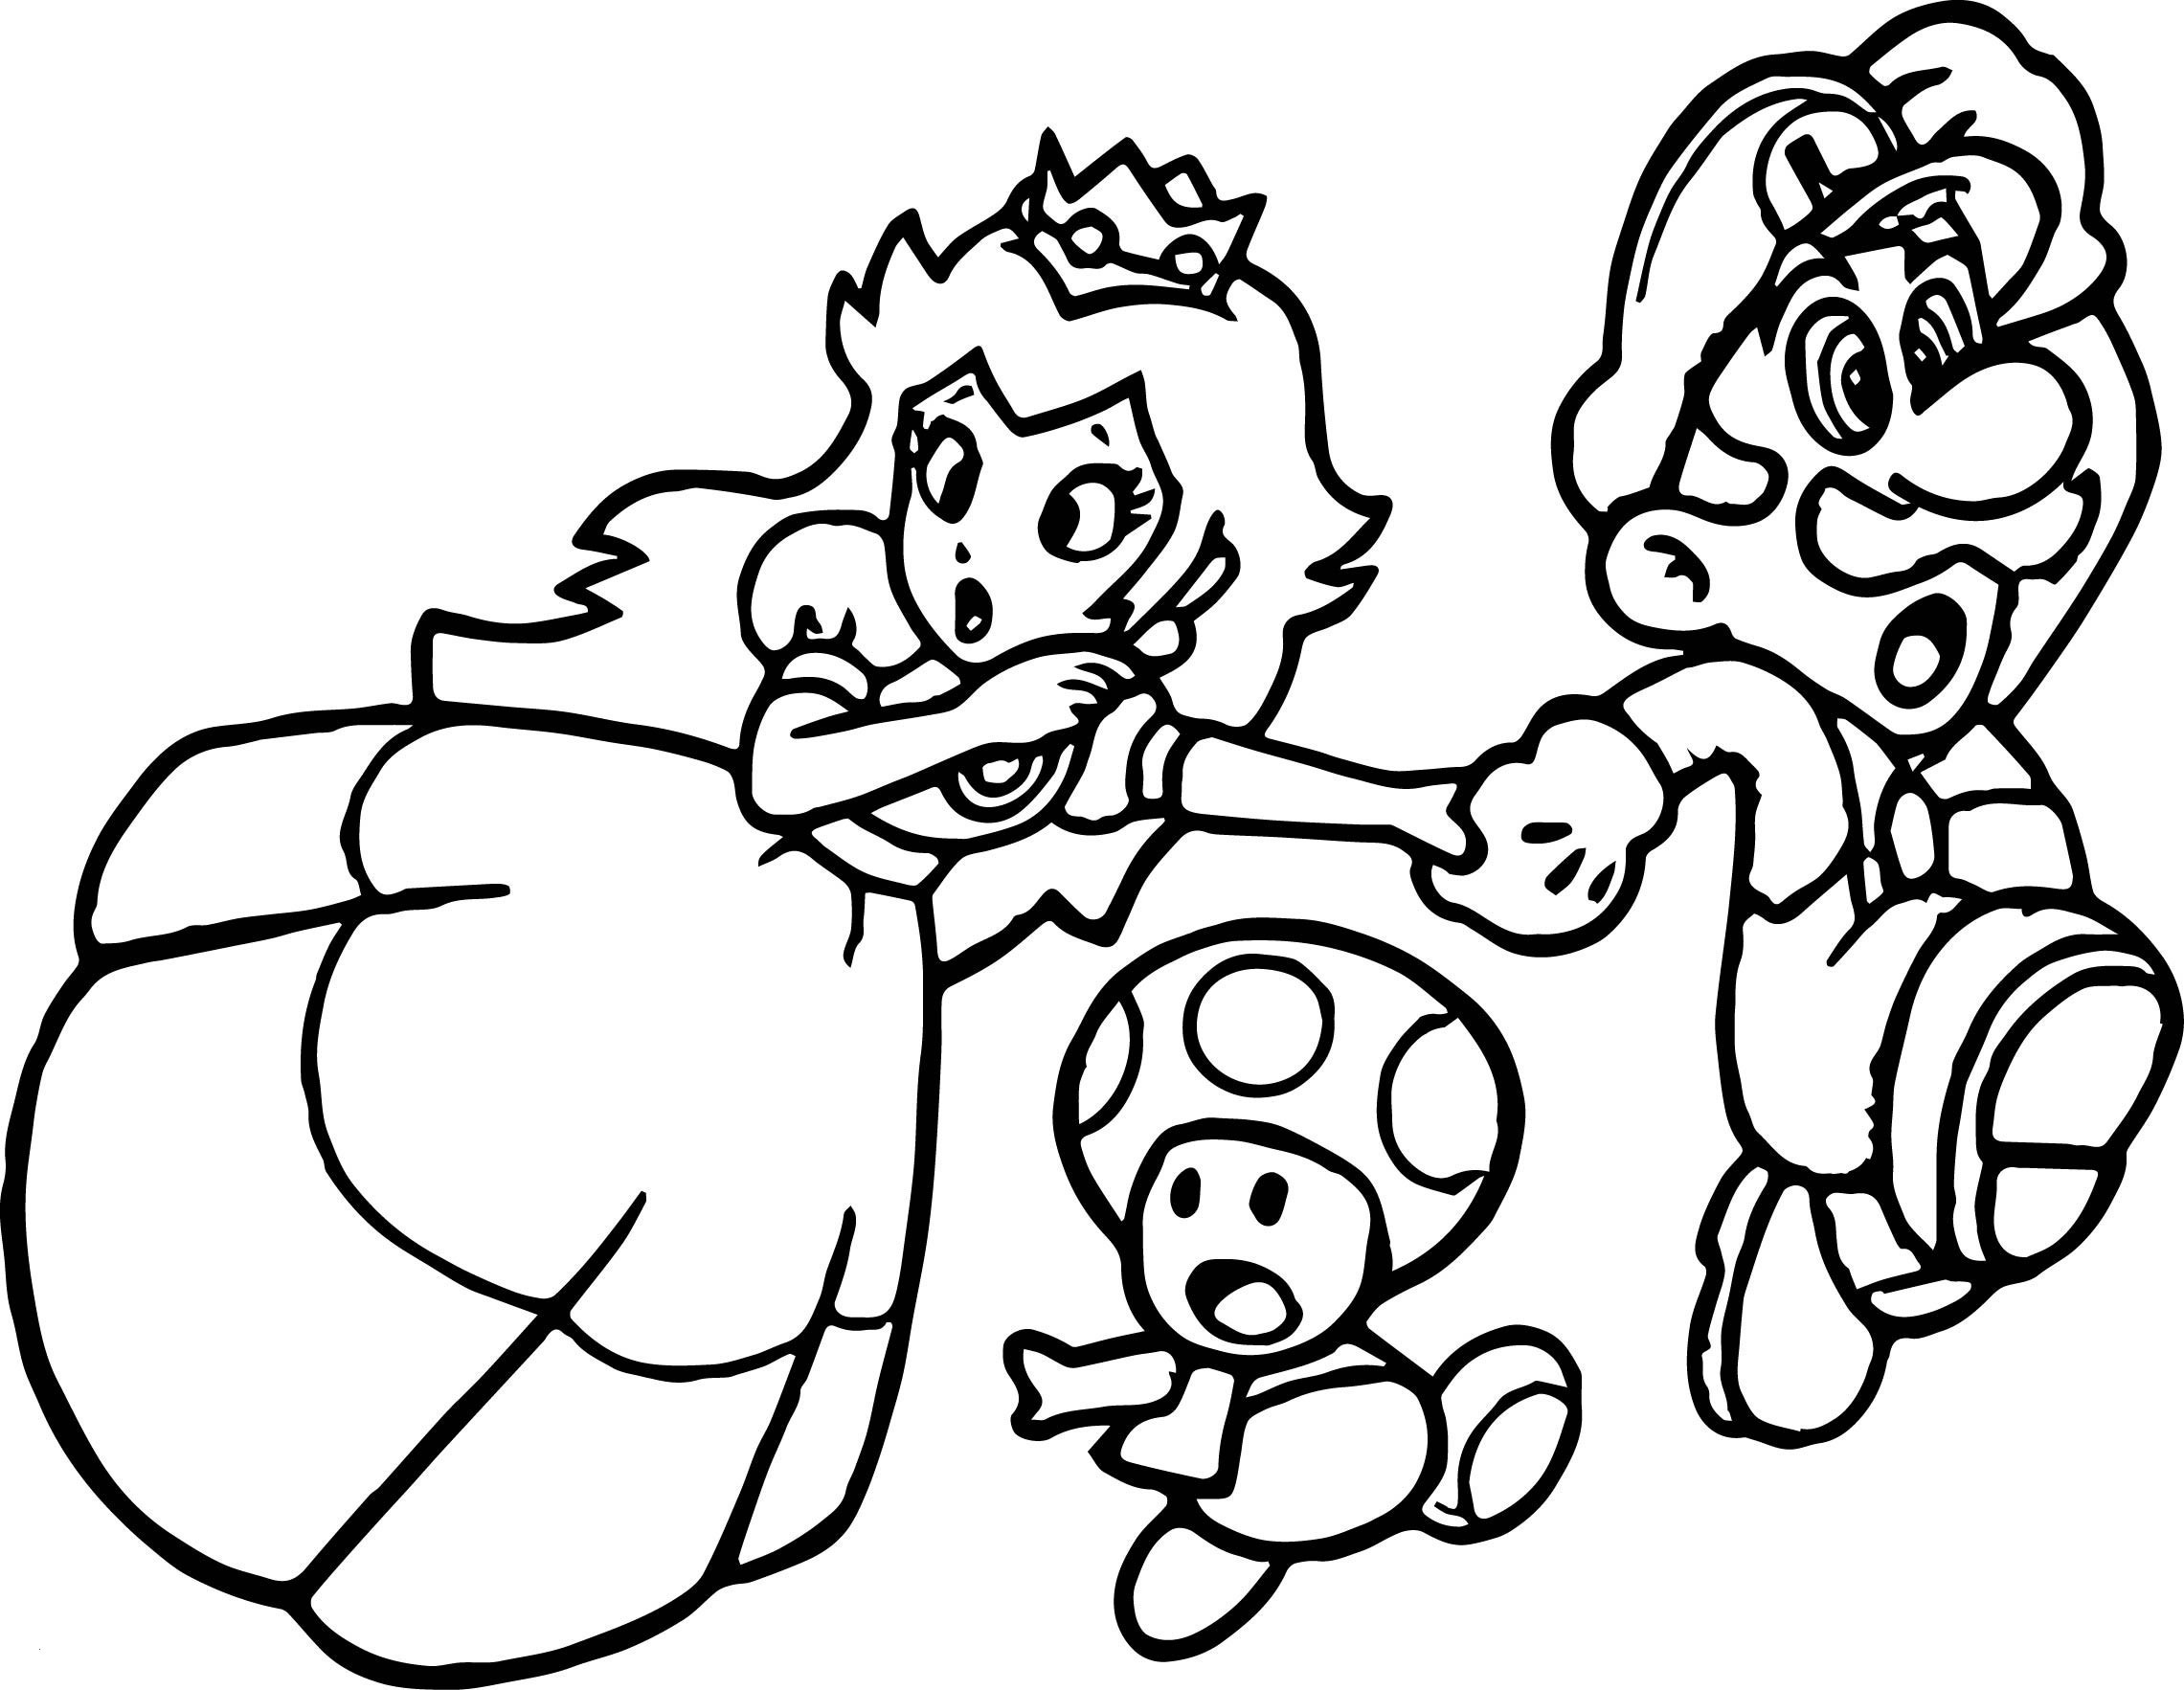 Super Mario Pilz Ausmalbilder Frisch Luigi Ausmalbilder Neu Super Mario Coloring Pages Awesome Fotos